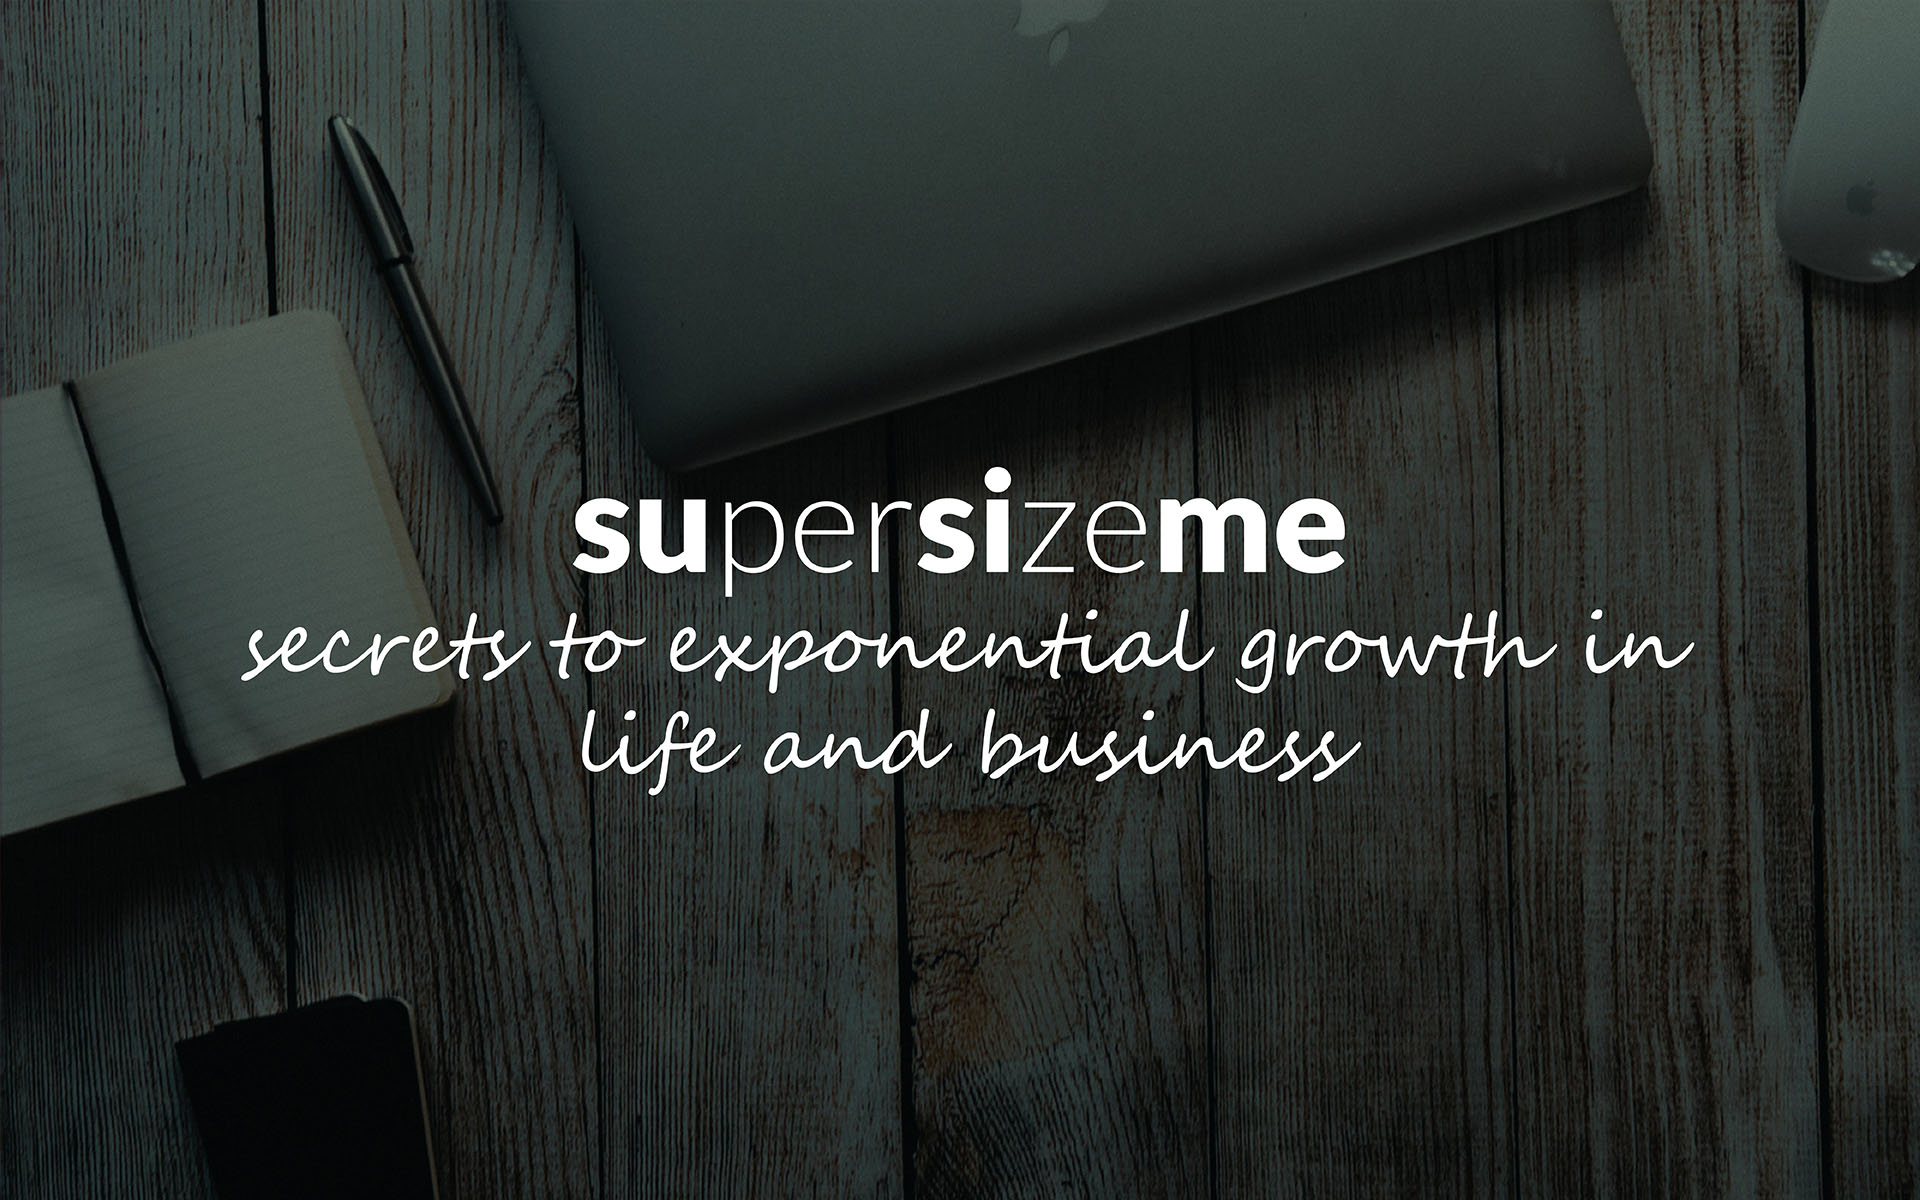 Supersizeme Home Page